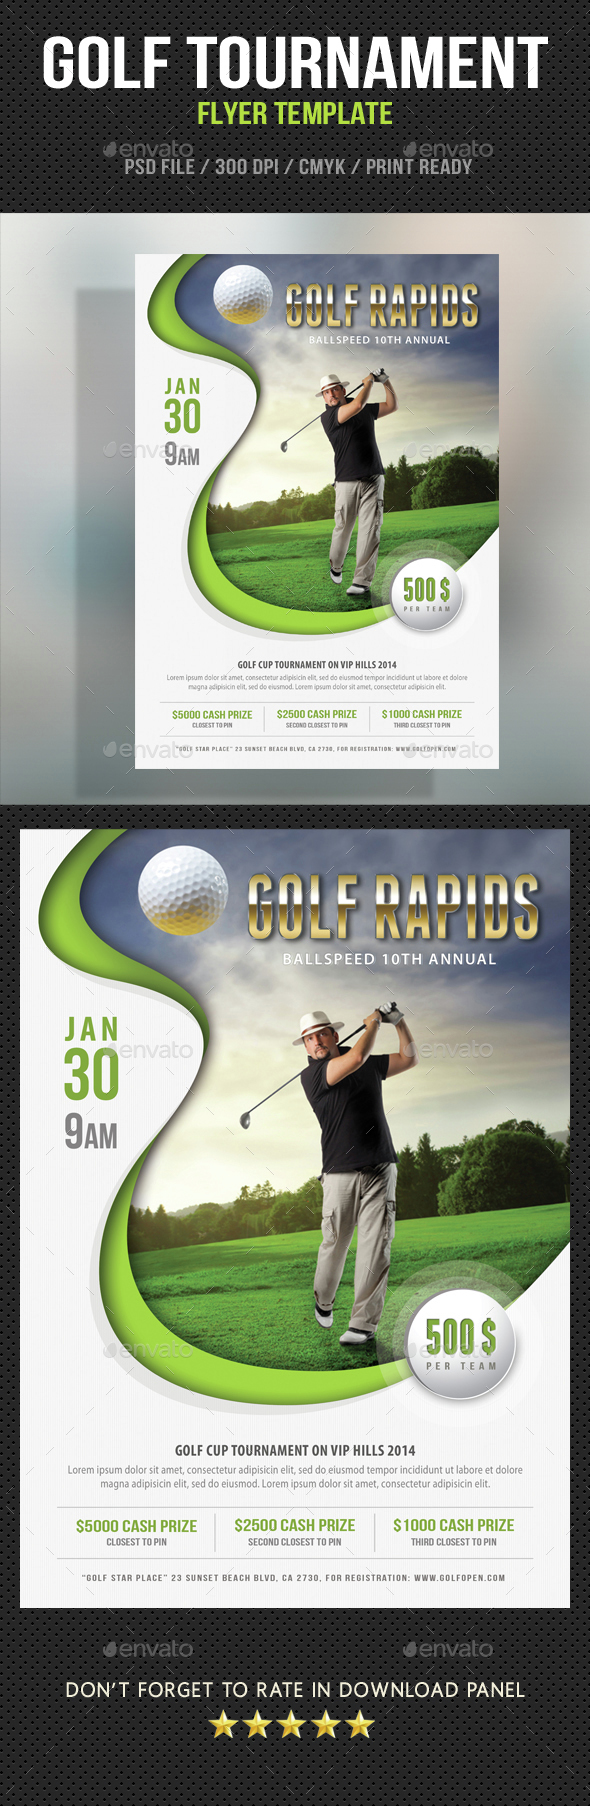 Golf Flyer Template 06 - Events Flyers